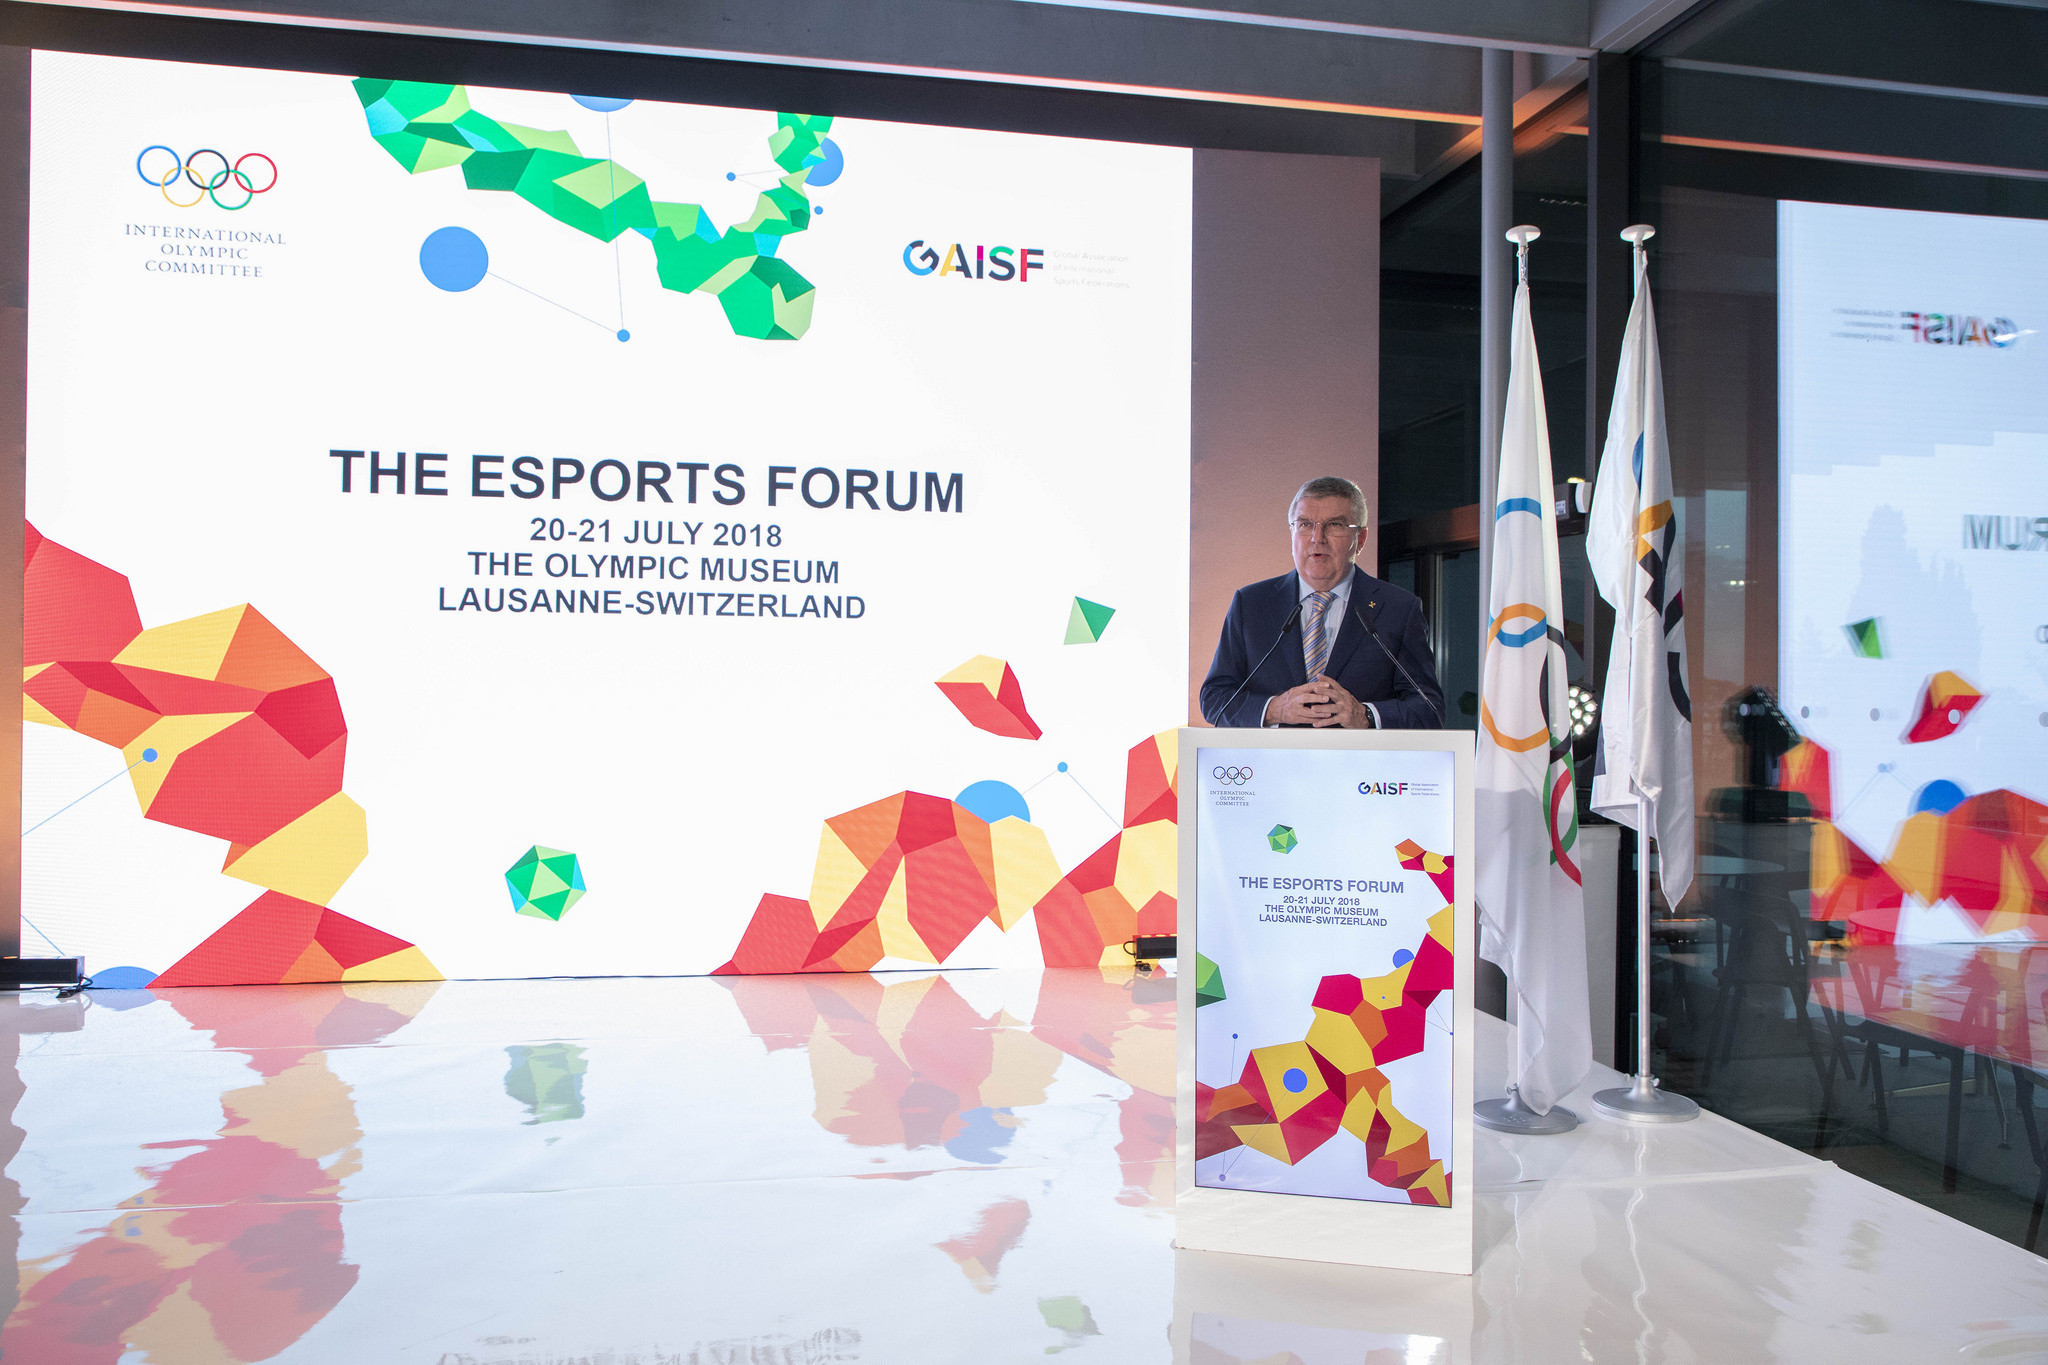 IOC President Thomas Bach speaking at an esports Forum in Lausanne ©IOC